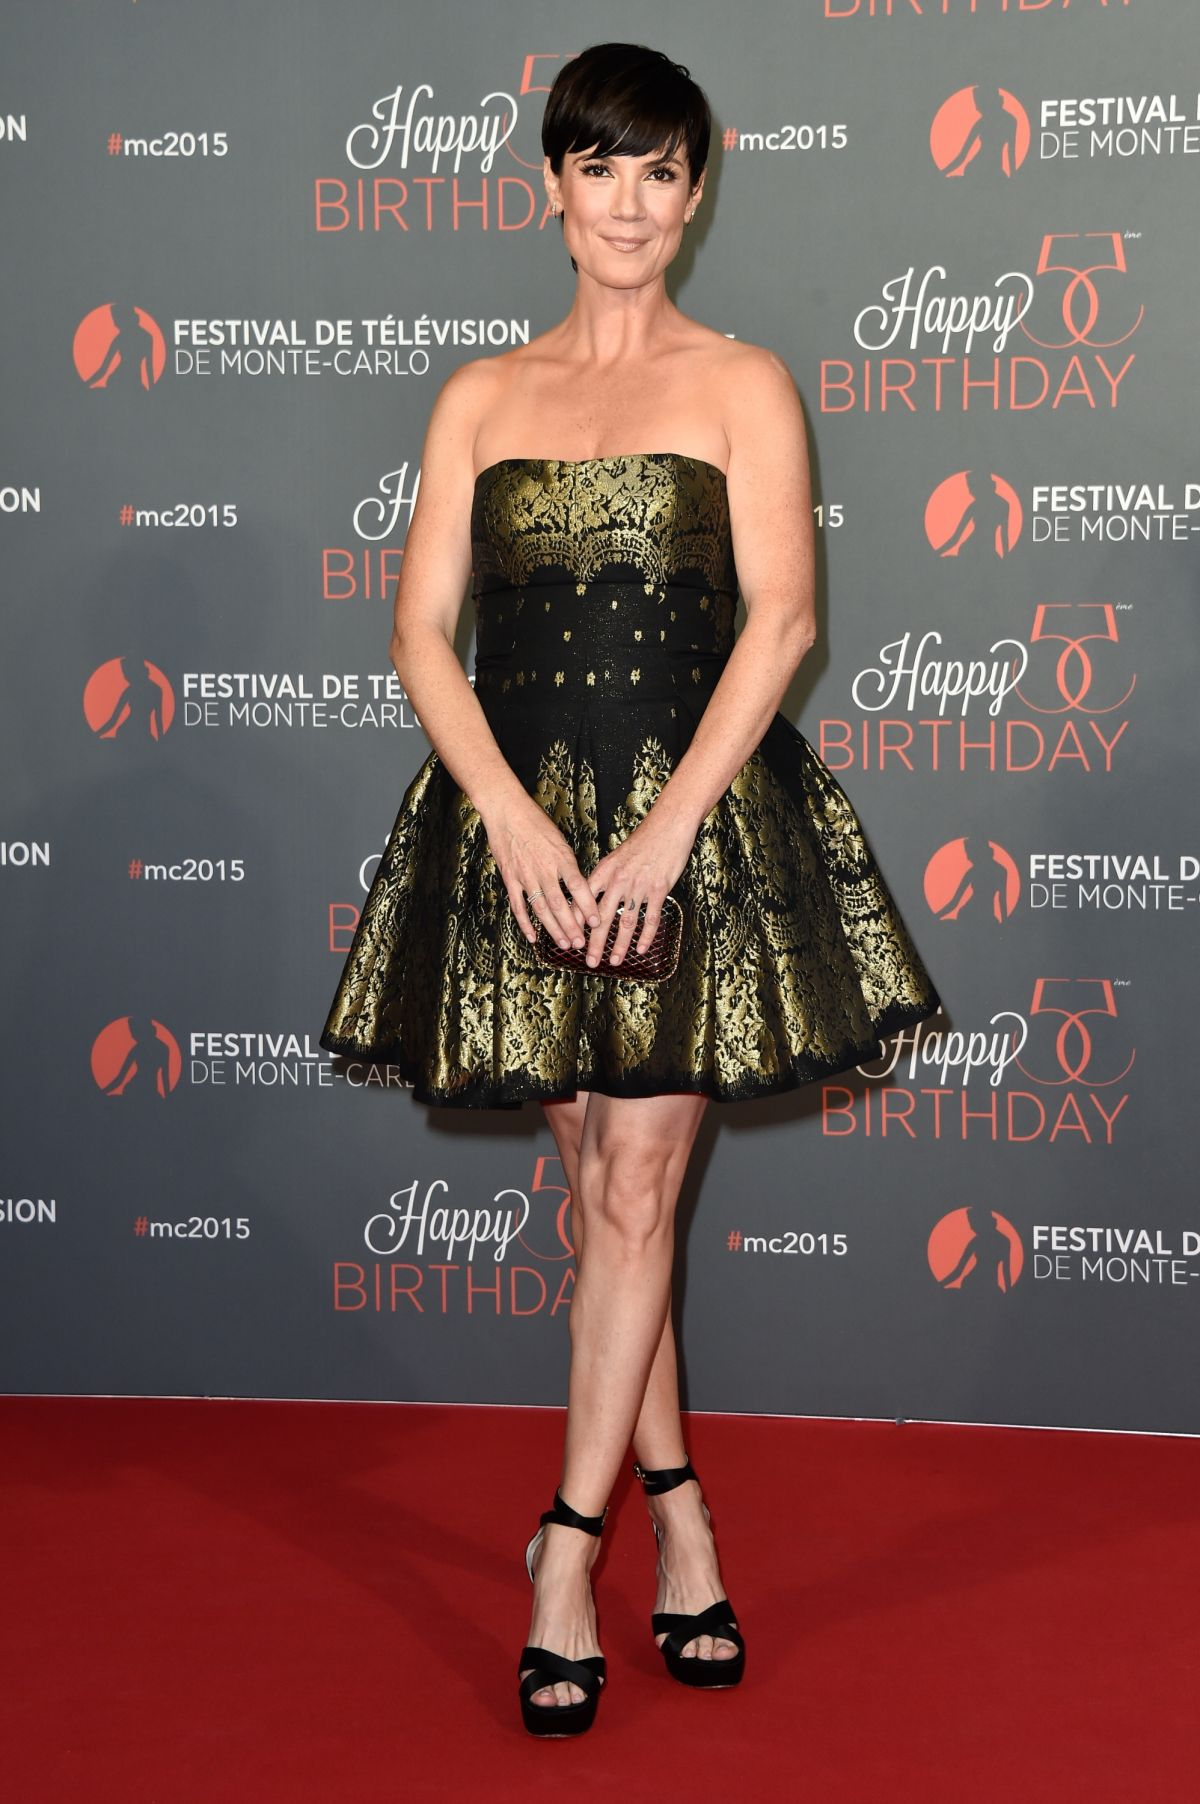 ZOE MCLELLAN at 55th Monte Carlo Beach Anniversary